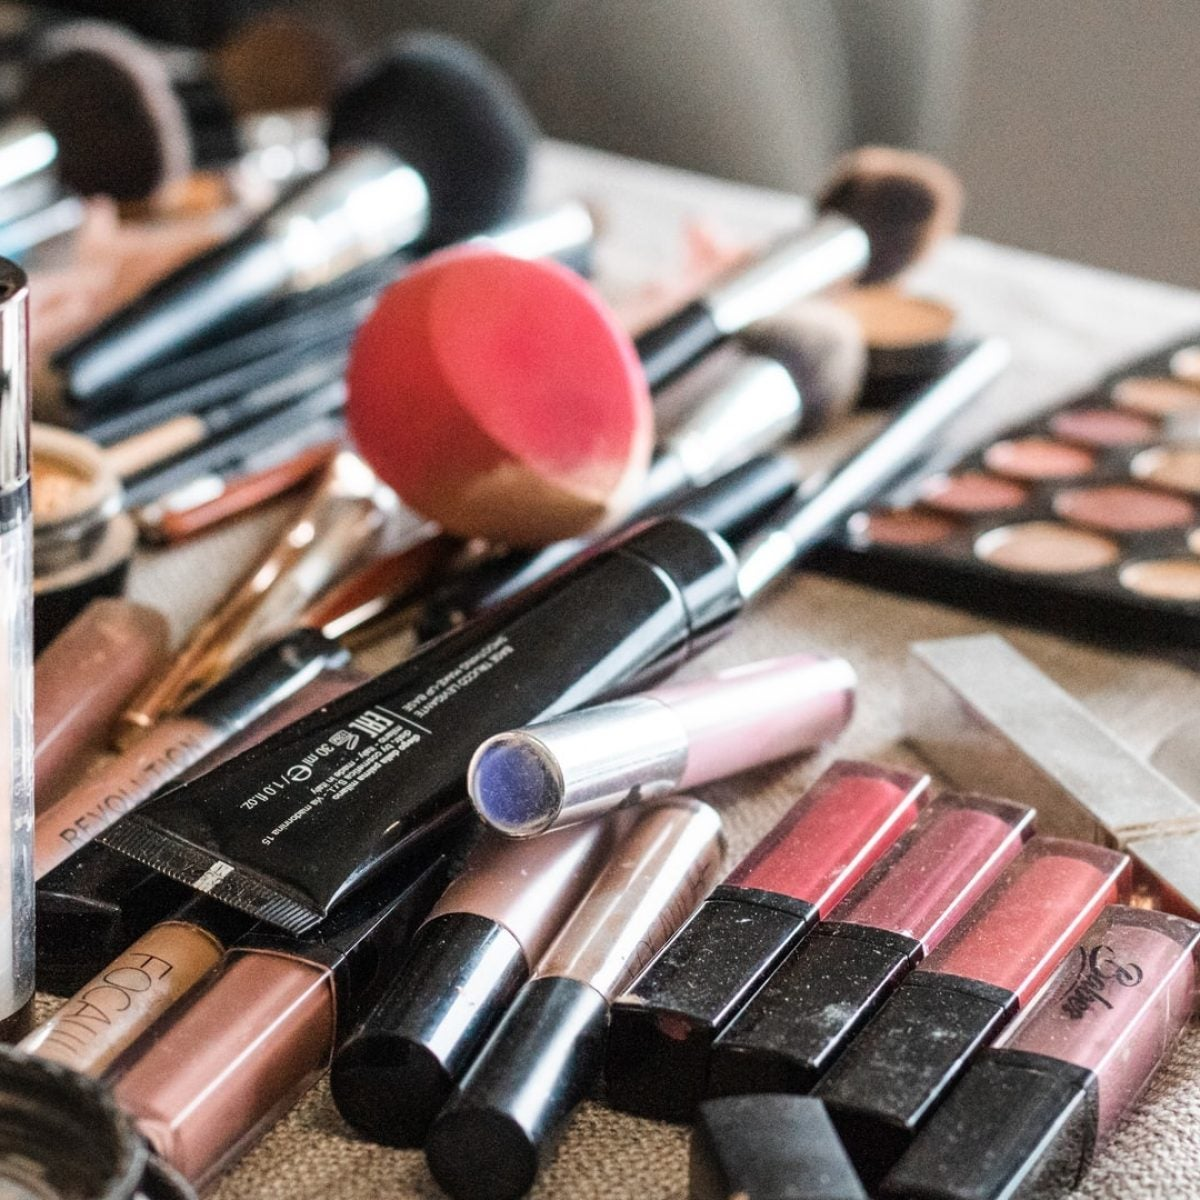 Time To Get Organized — Expert Organizer Shares How To Clean The Clutter Off Your Beauty Counter